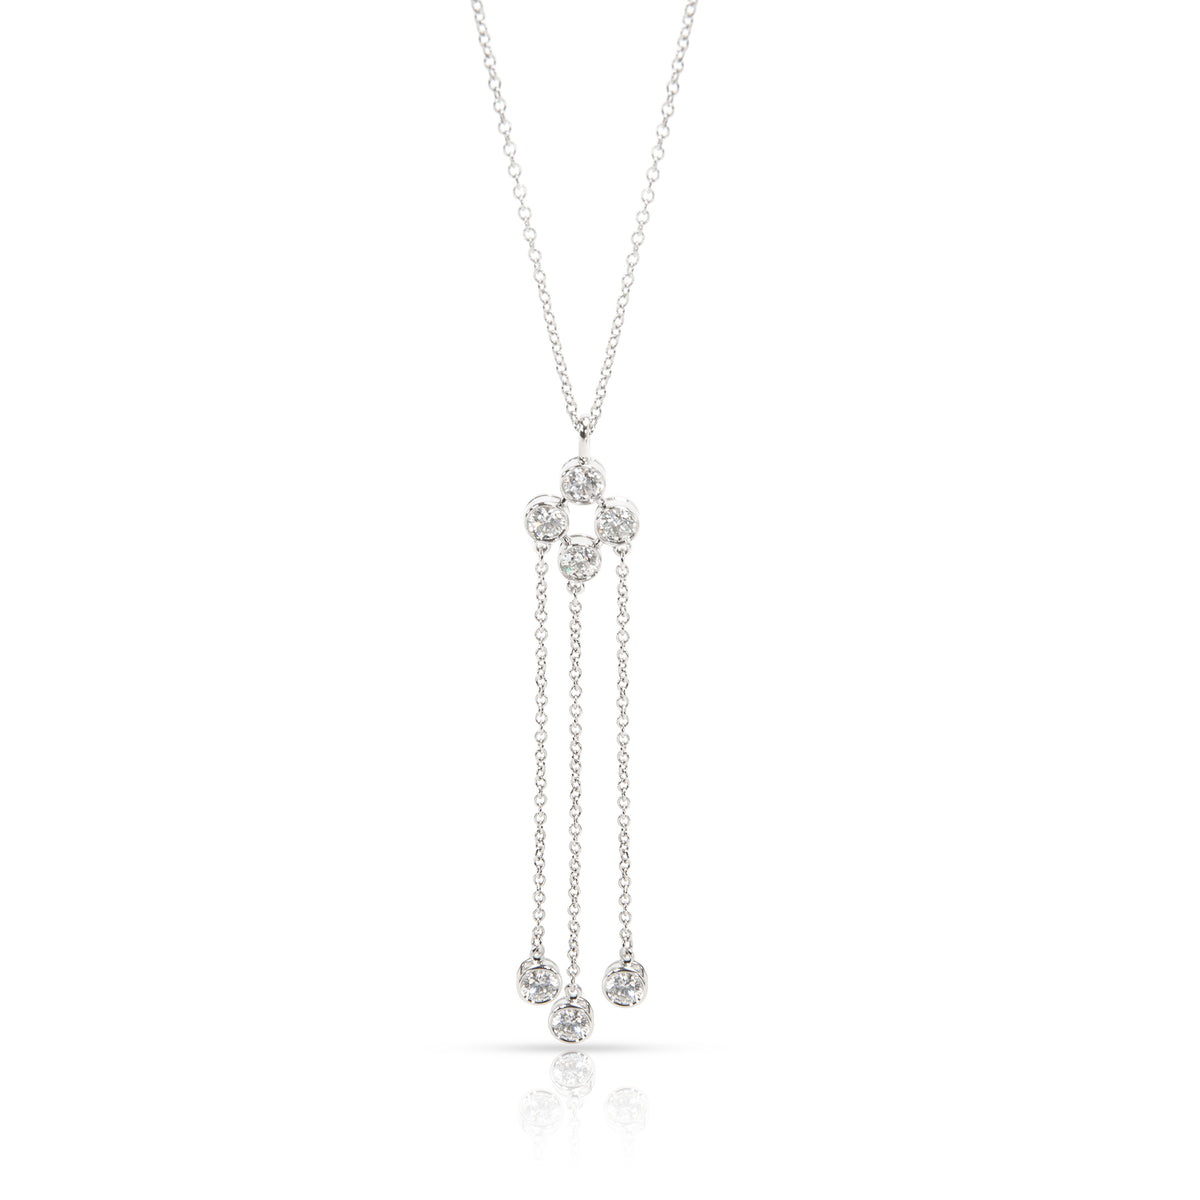 Tiffany & Co. Jazz Triple Strand Diamond Necklace in  Platinum 0.7 CTW